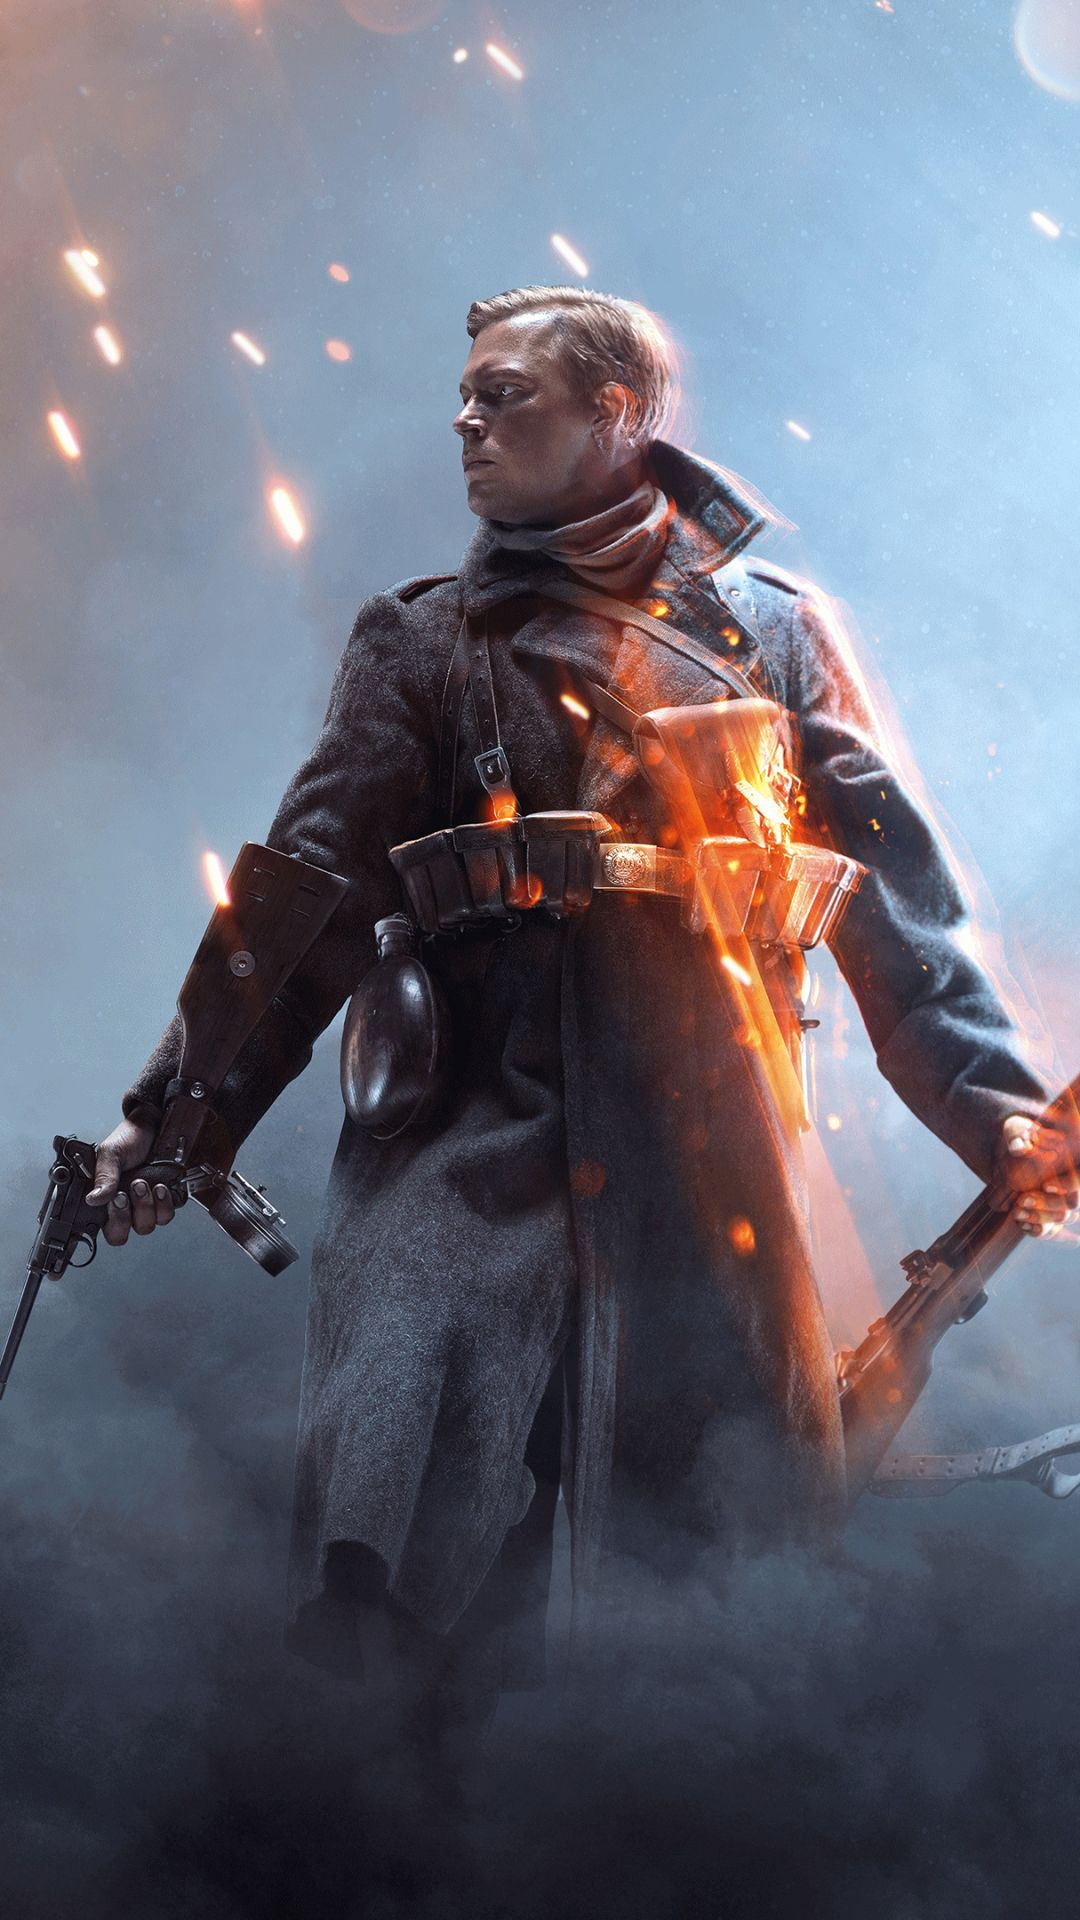 Hd Wallpaper 32 Battlefield 1 Battlefield Battlefield Games